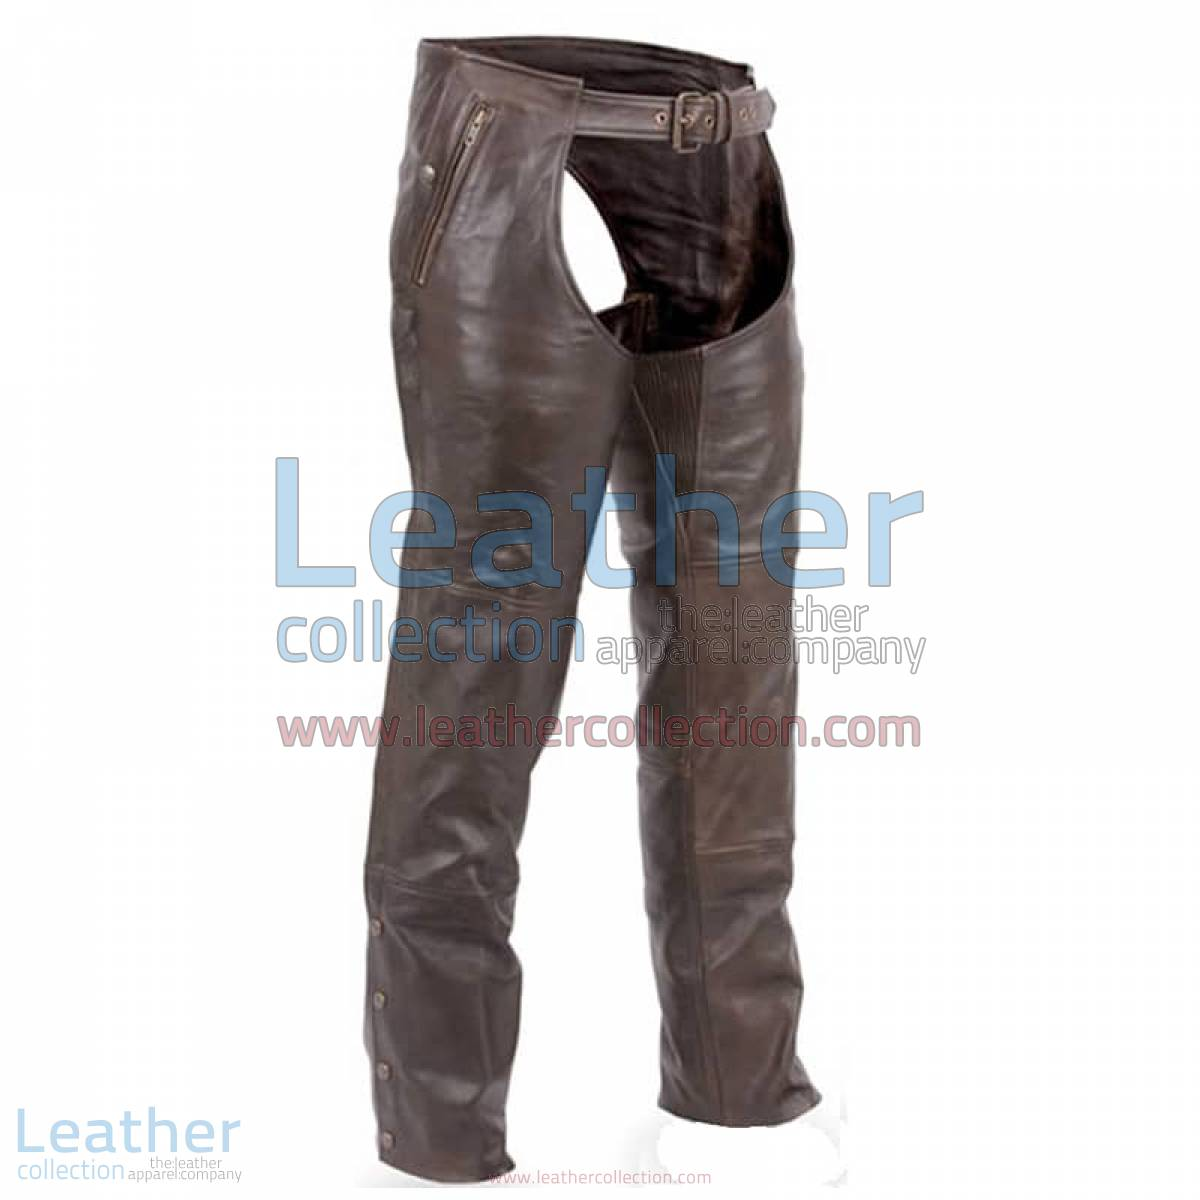 Premium Brown Leather Motorcycle Chaps | brown leather chaps,leather motorcycle chaps